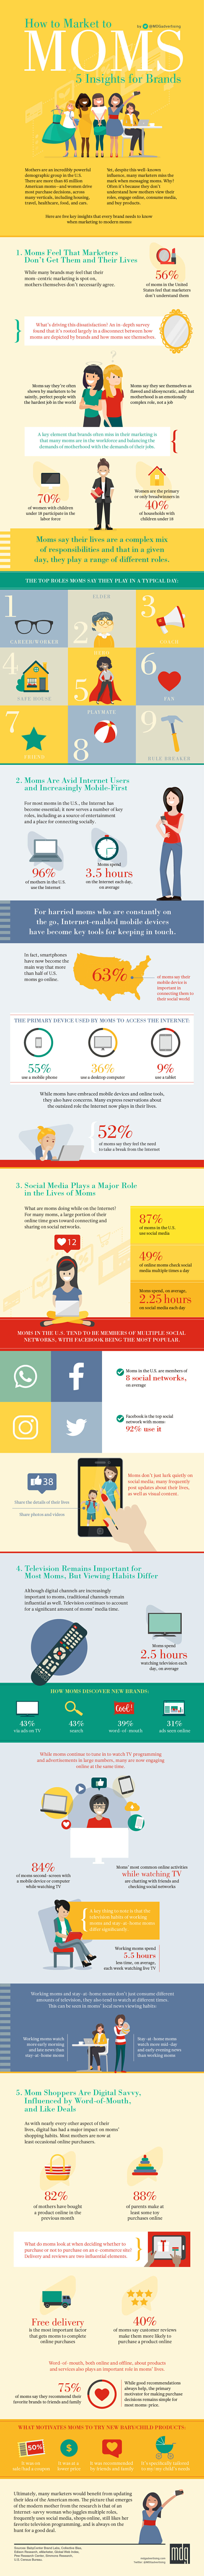 Infographic: How to Market to Moms: 5 Insights For Brands